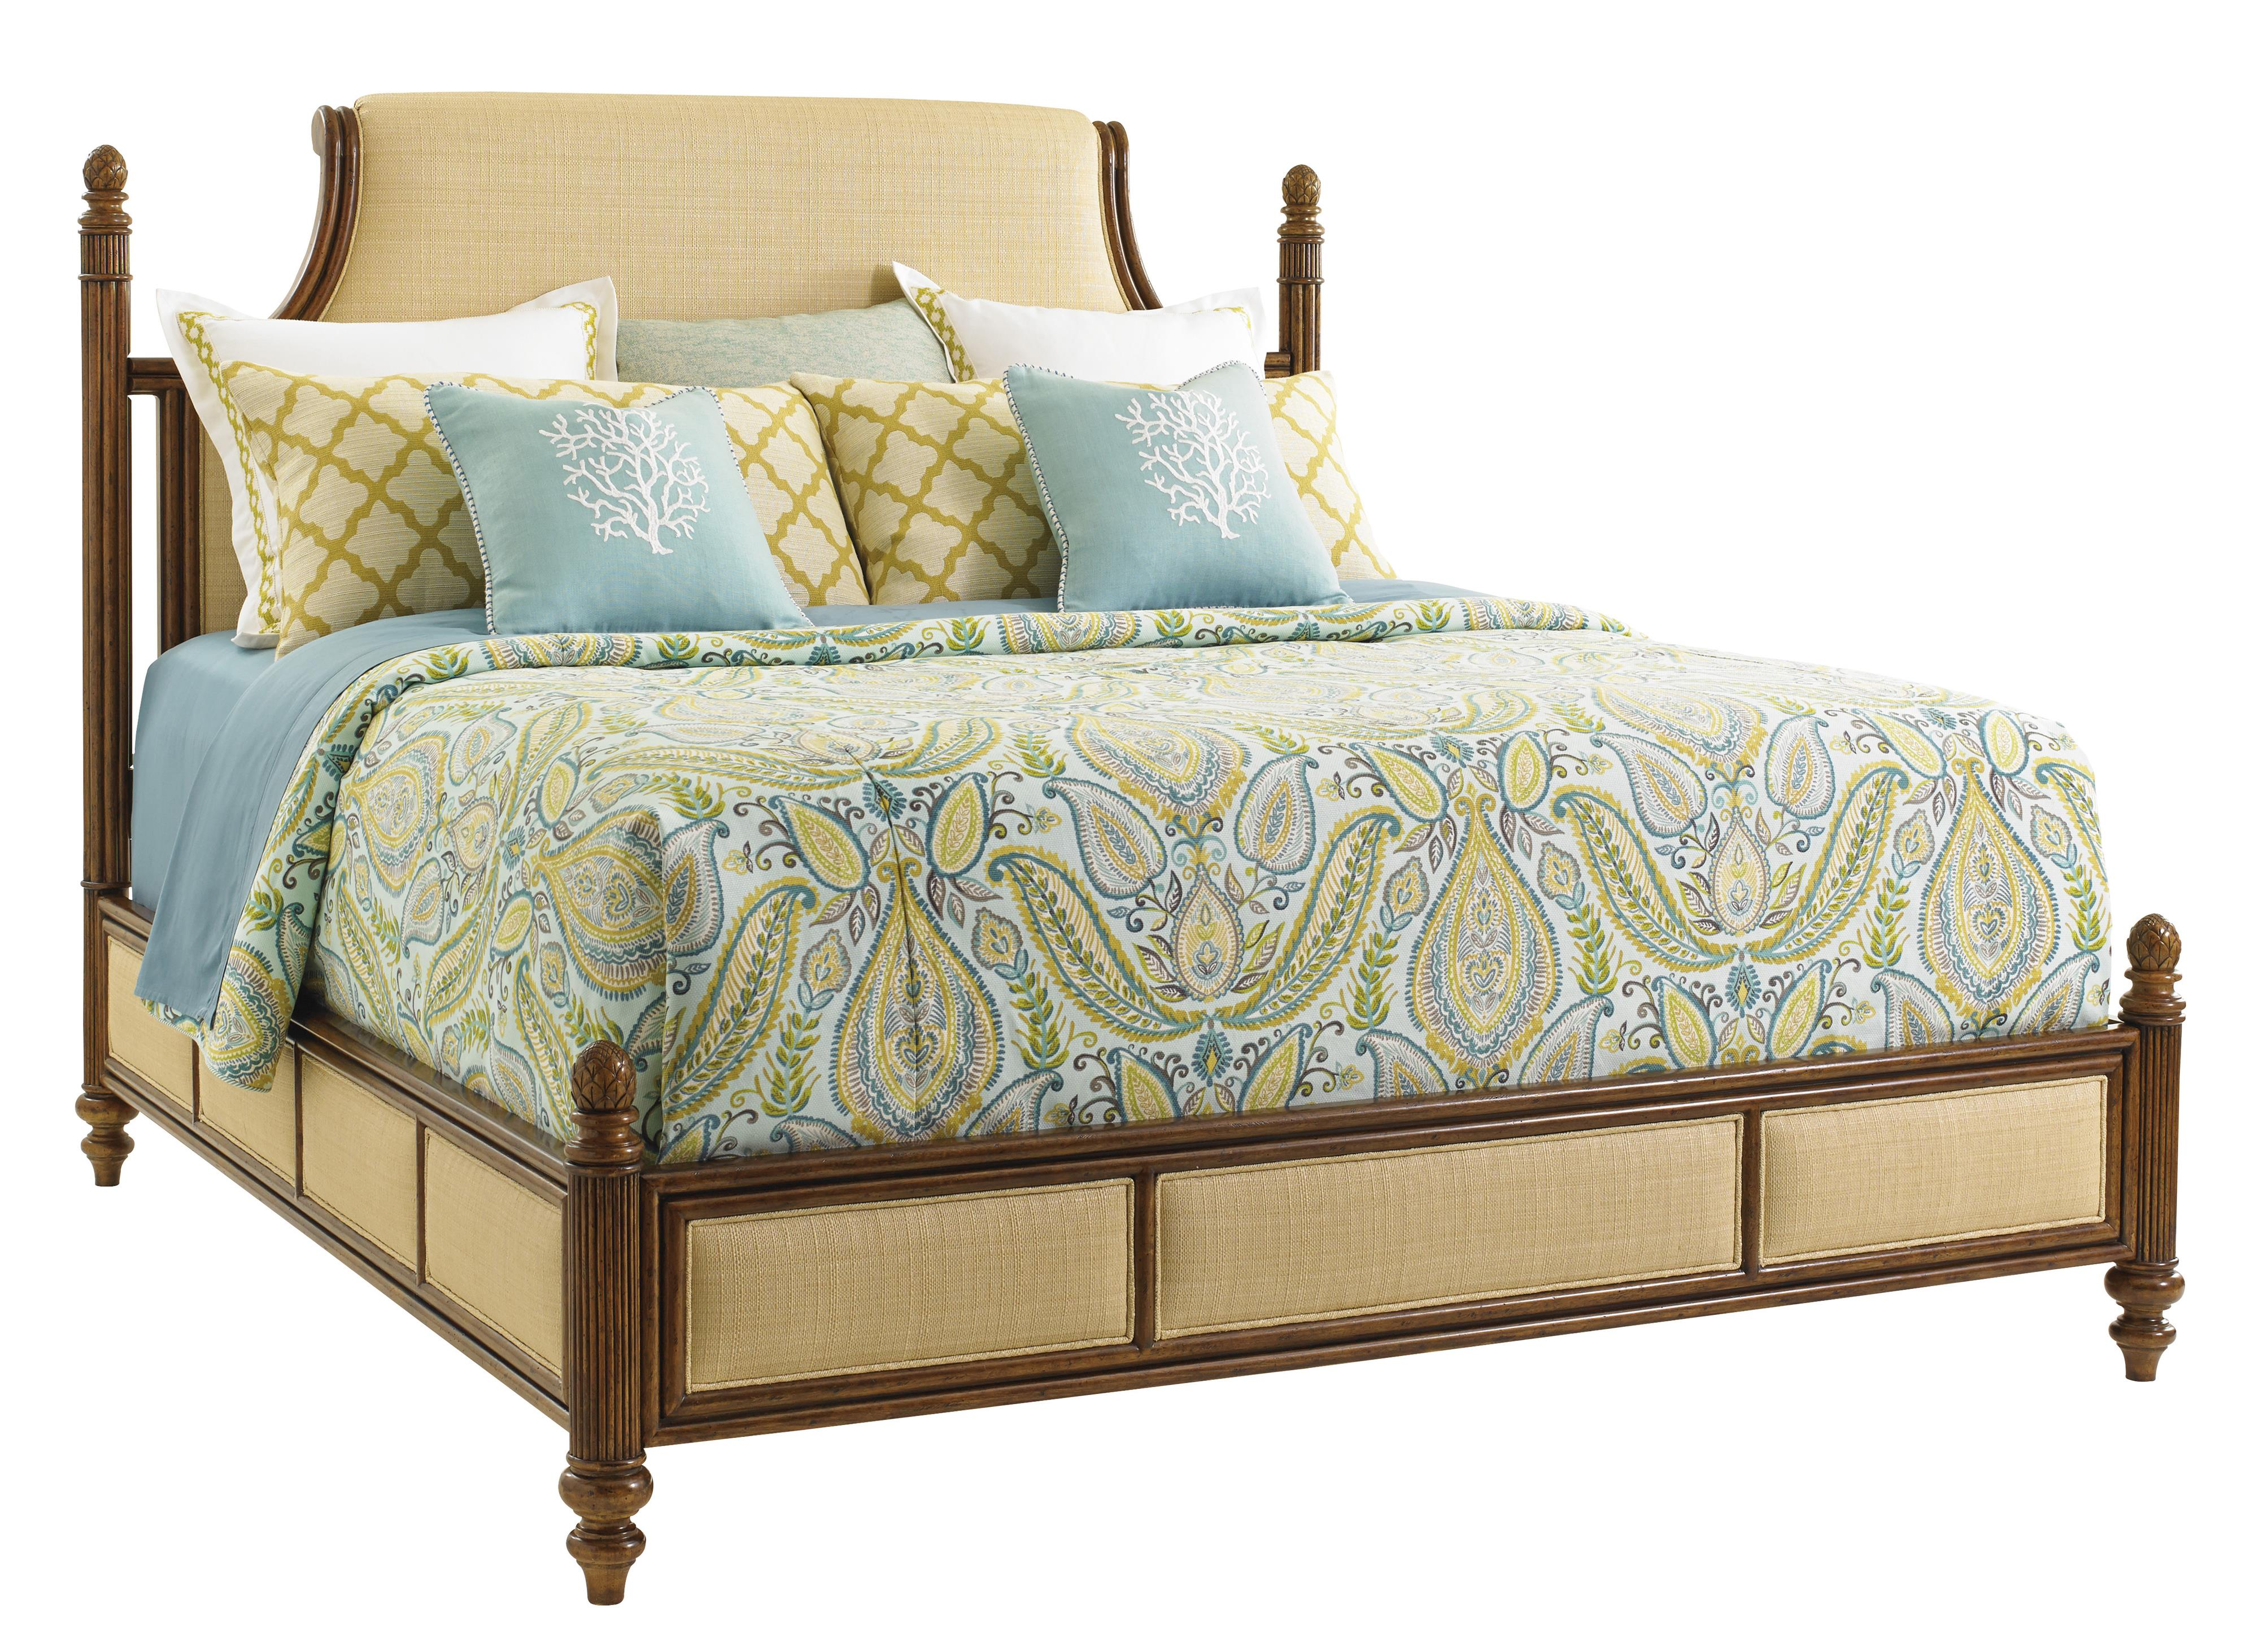 5/0 Orchid Bay Upholstered Bed